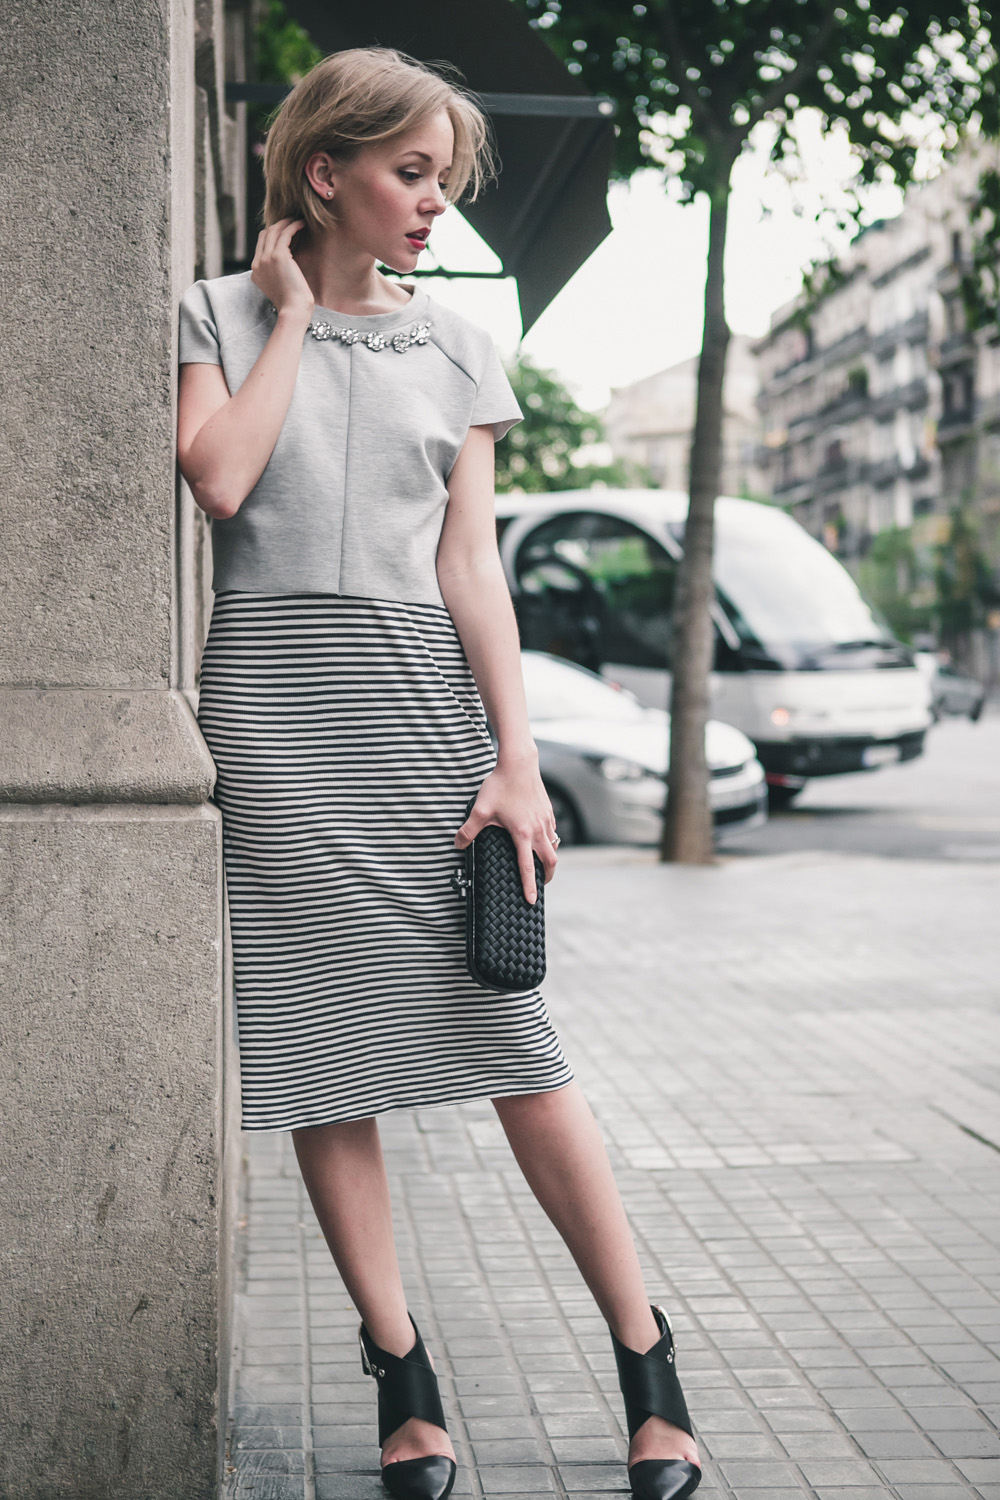 darya kamalova fashion blogger from thecablook in trip in Barcelona Spain with Pronovias wearing zara striped dress bottega veneta knot clutch for press dinner-0962